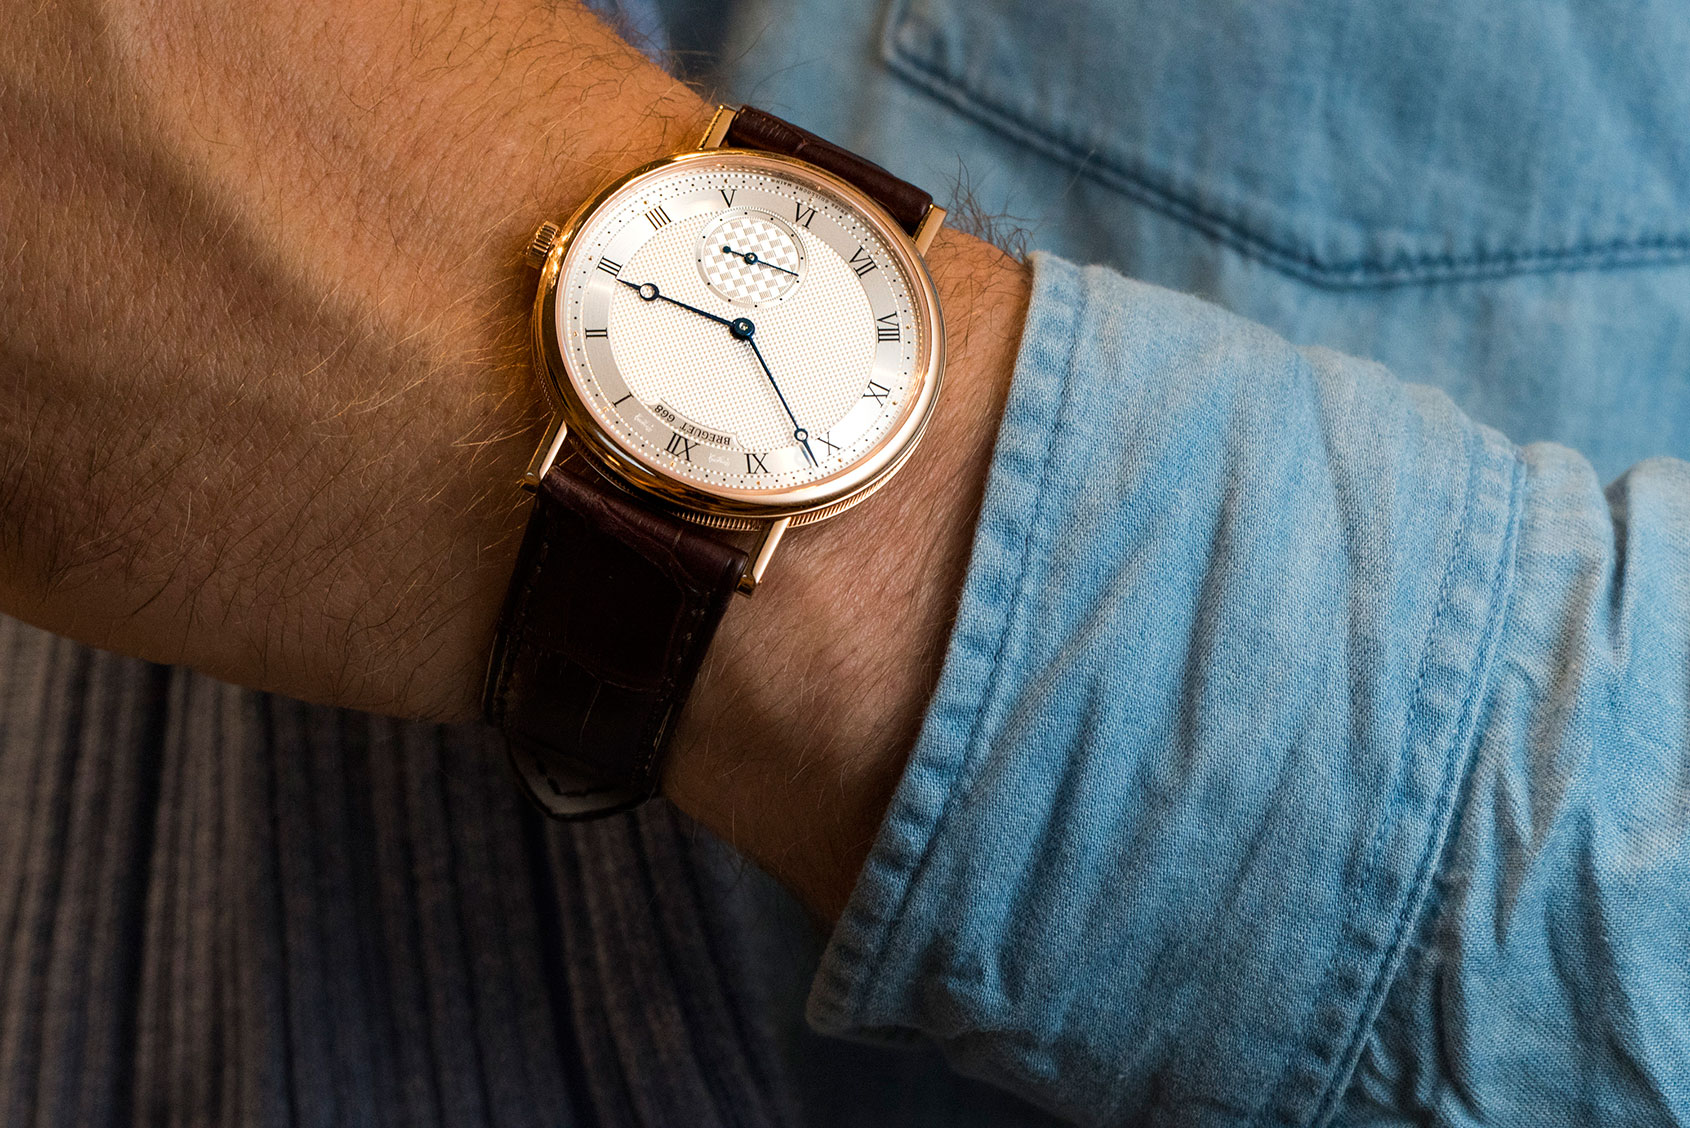 This Breguet Classique 7147 is pretty unbeatable as a dress watch